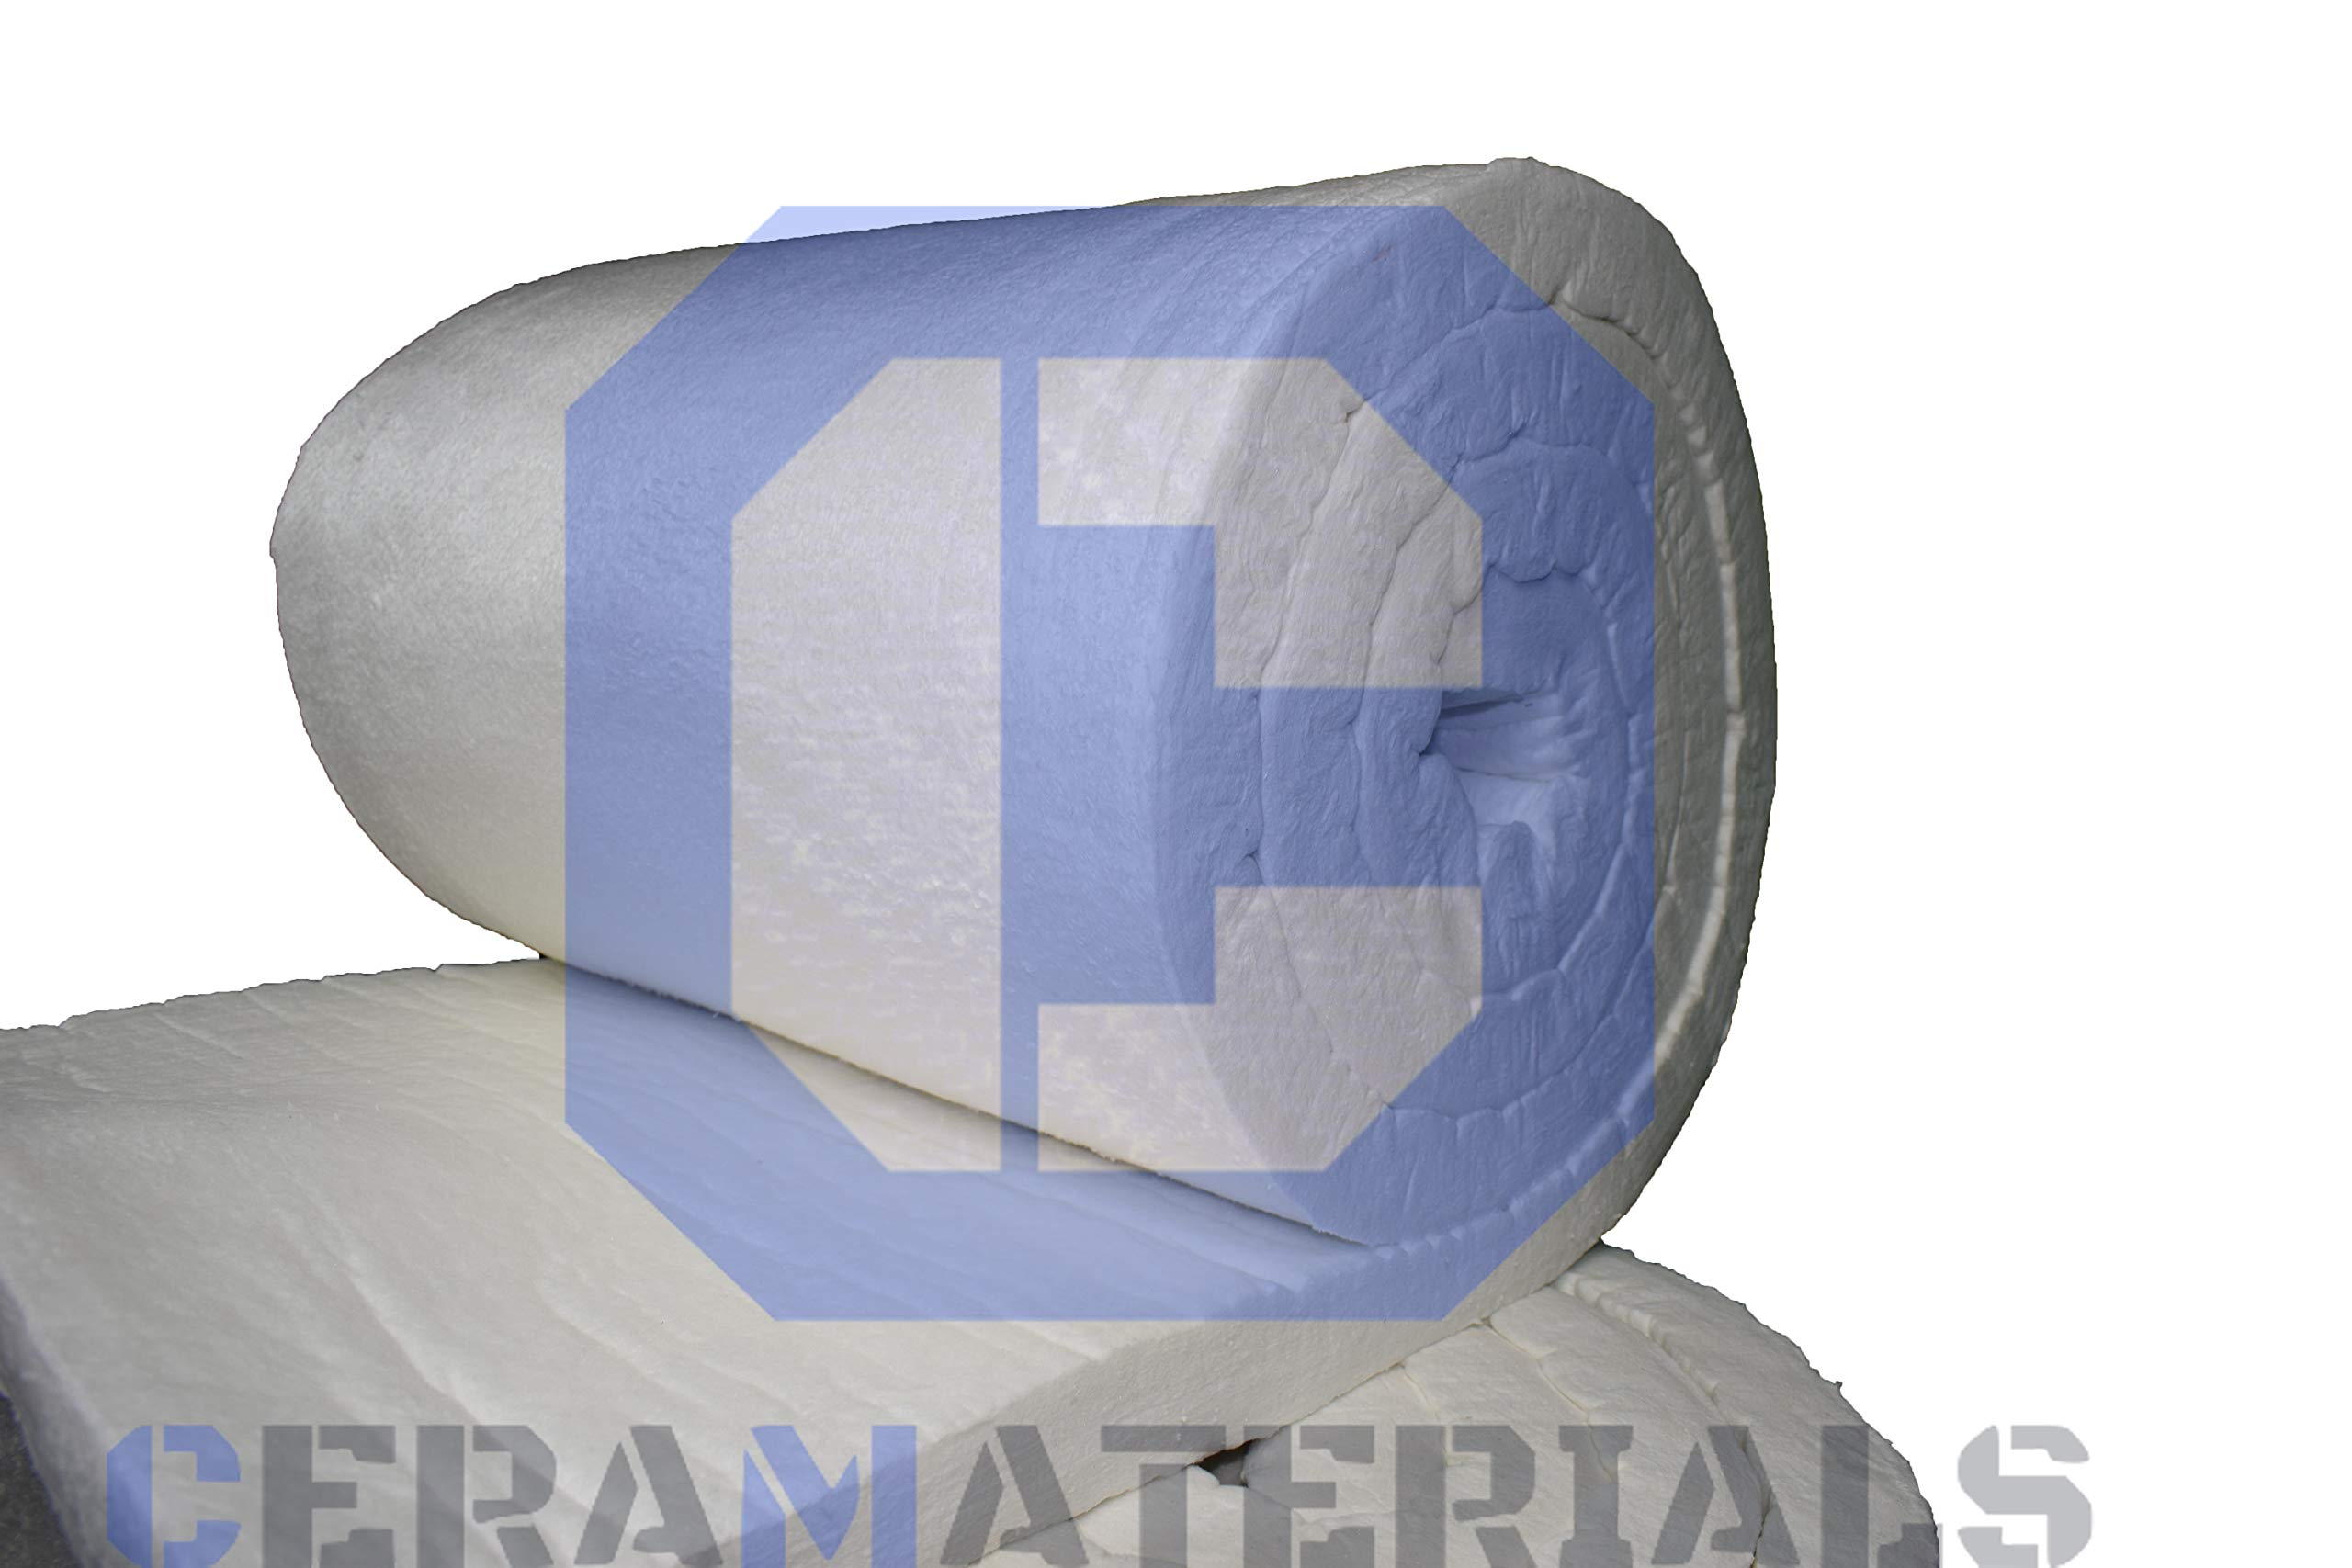 Ceramic Fiber Insulation Blanket 8# Density 2300F (2''x24''x12.5') for Thermal Insulation of Stoves, Pizza Ovens, Furnaces, Kilns & More by CeraMaterials